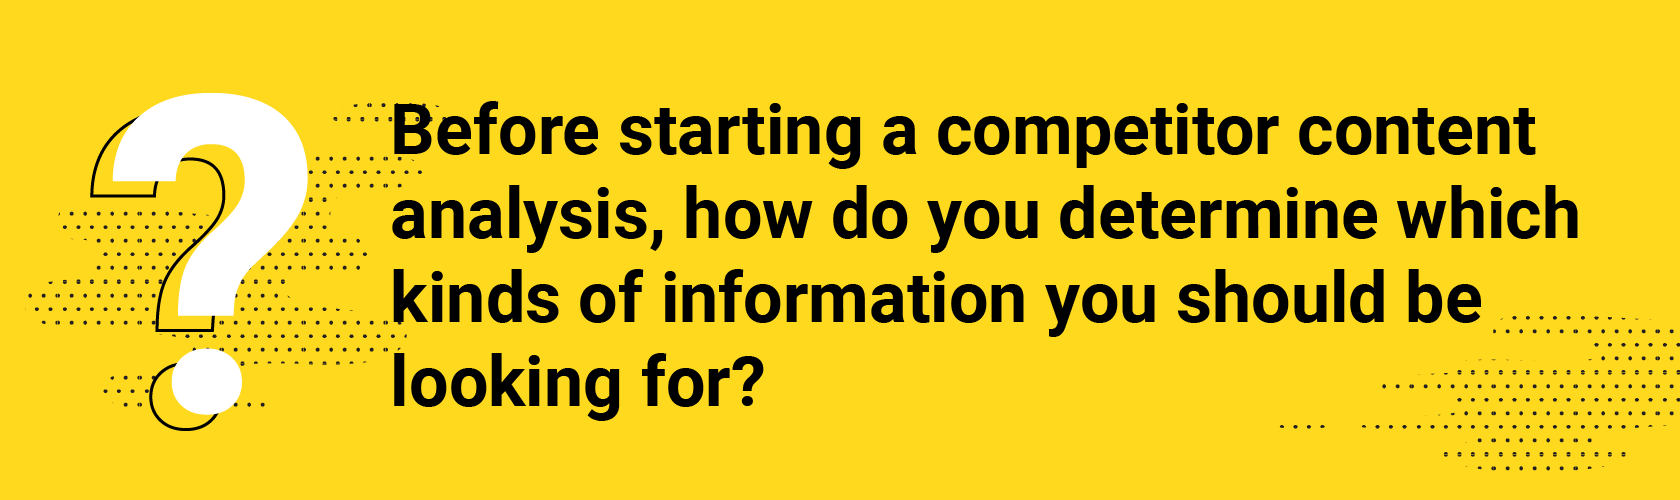 Q1. Before starting a competitor content analysis, how do you determine which kinds of information you should be looking for?